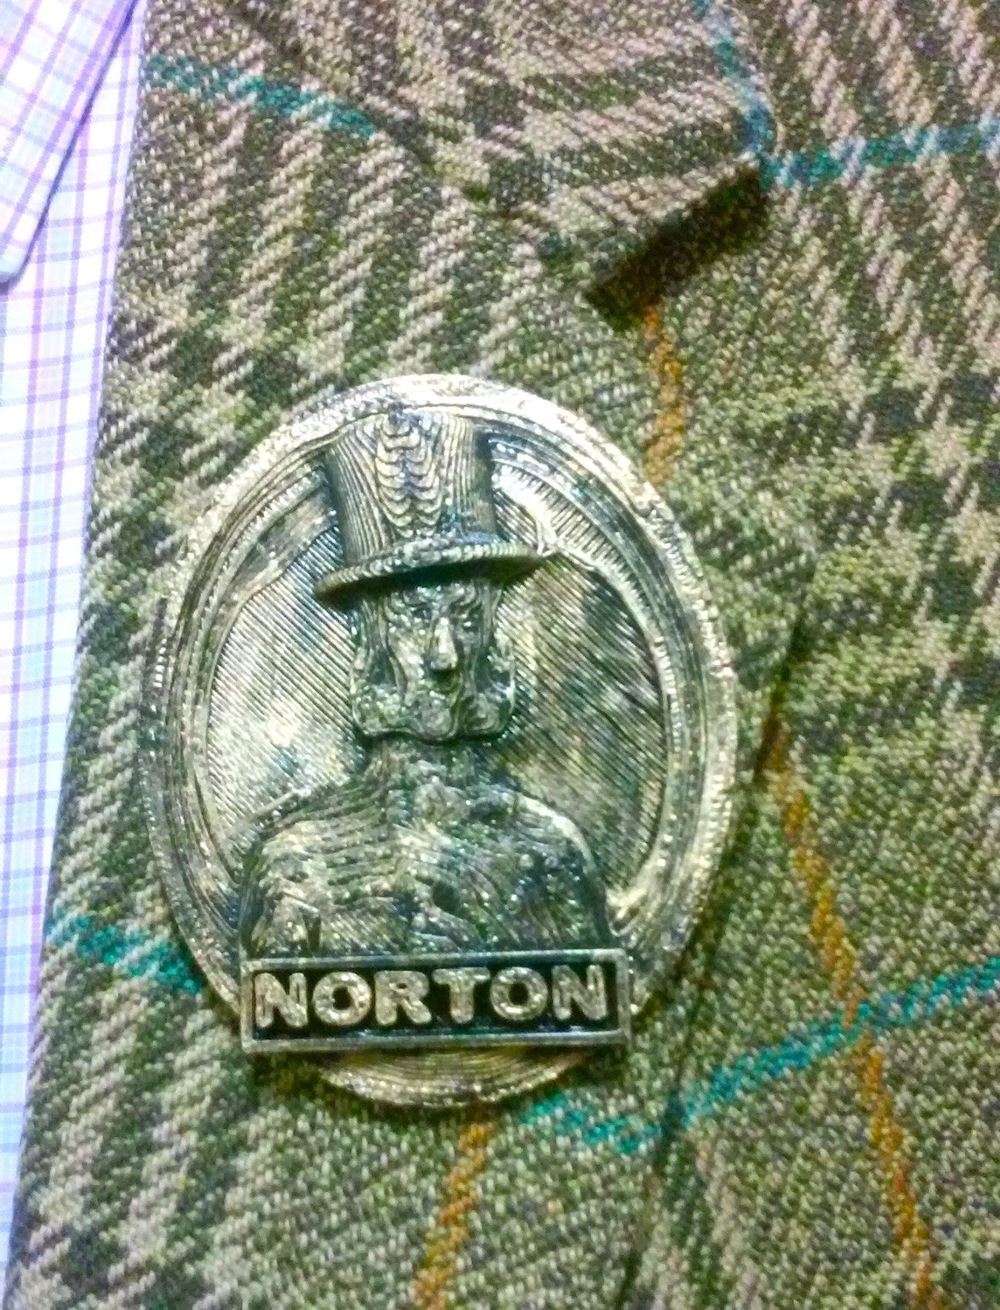 Suiting up. Campaign president John Lumea was joined at the San Francisco History Association Dinner by Campaign board members Joseph Amster and Kristian Akseth. Board member Aaron Almanza was  present in the form of this Emperor Norton pin that he made recently. The pin was on Lumea's lapel throughout the evening. (Almanza's Nortoning miniature is featured in the Sculptures & Fabrications gallery of the Campaign's ARENA: Archive of Emperor Norton in Art, Music & Film.)